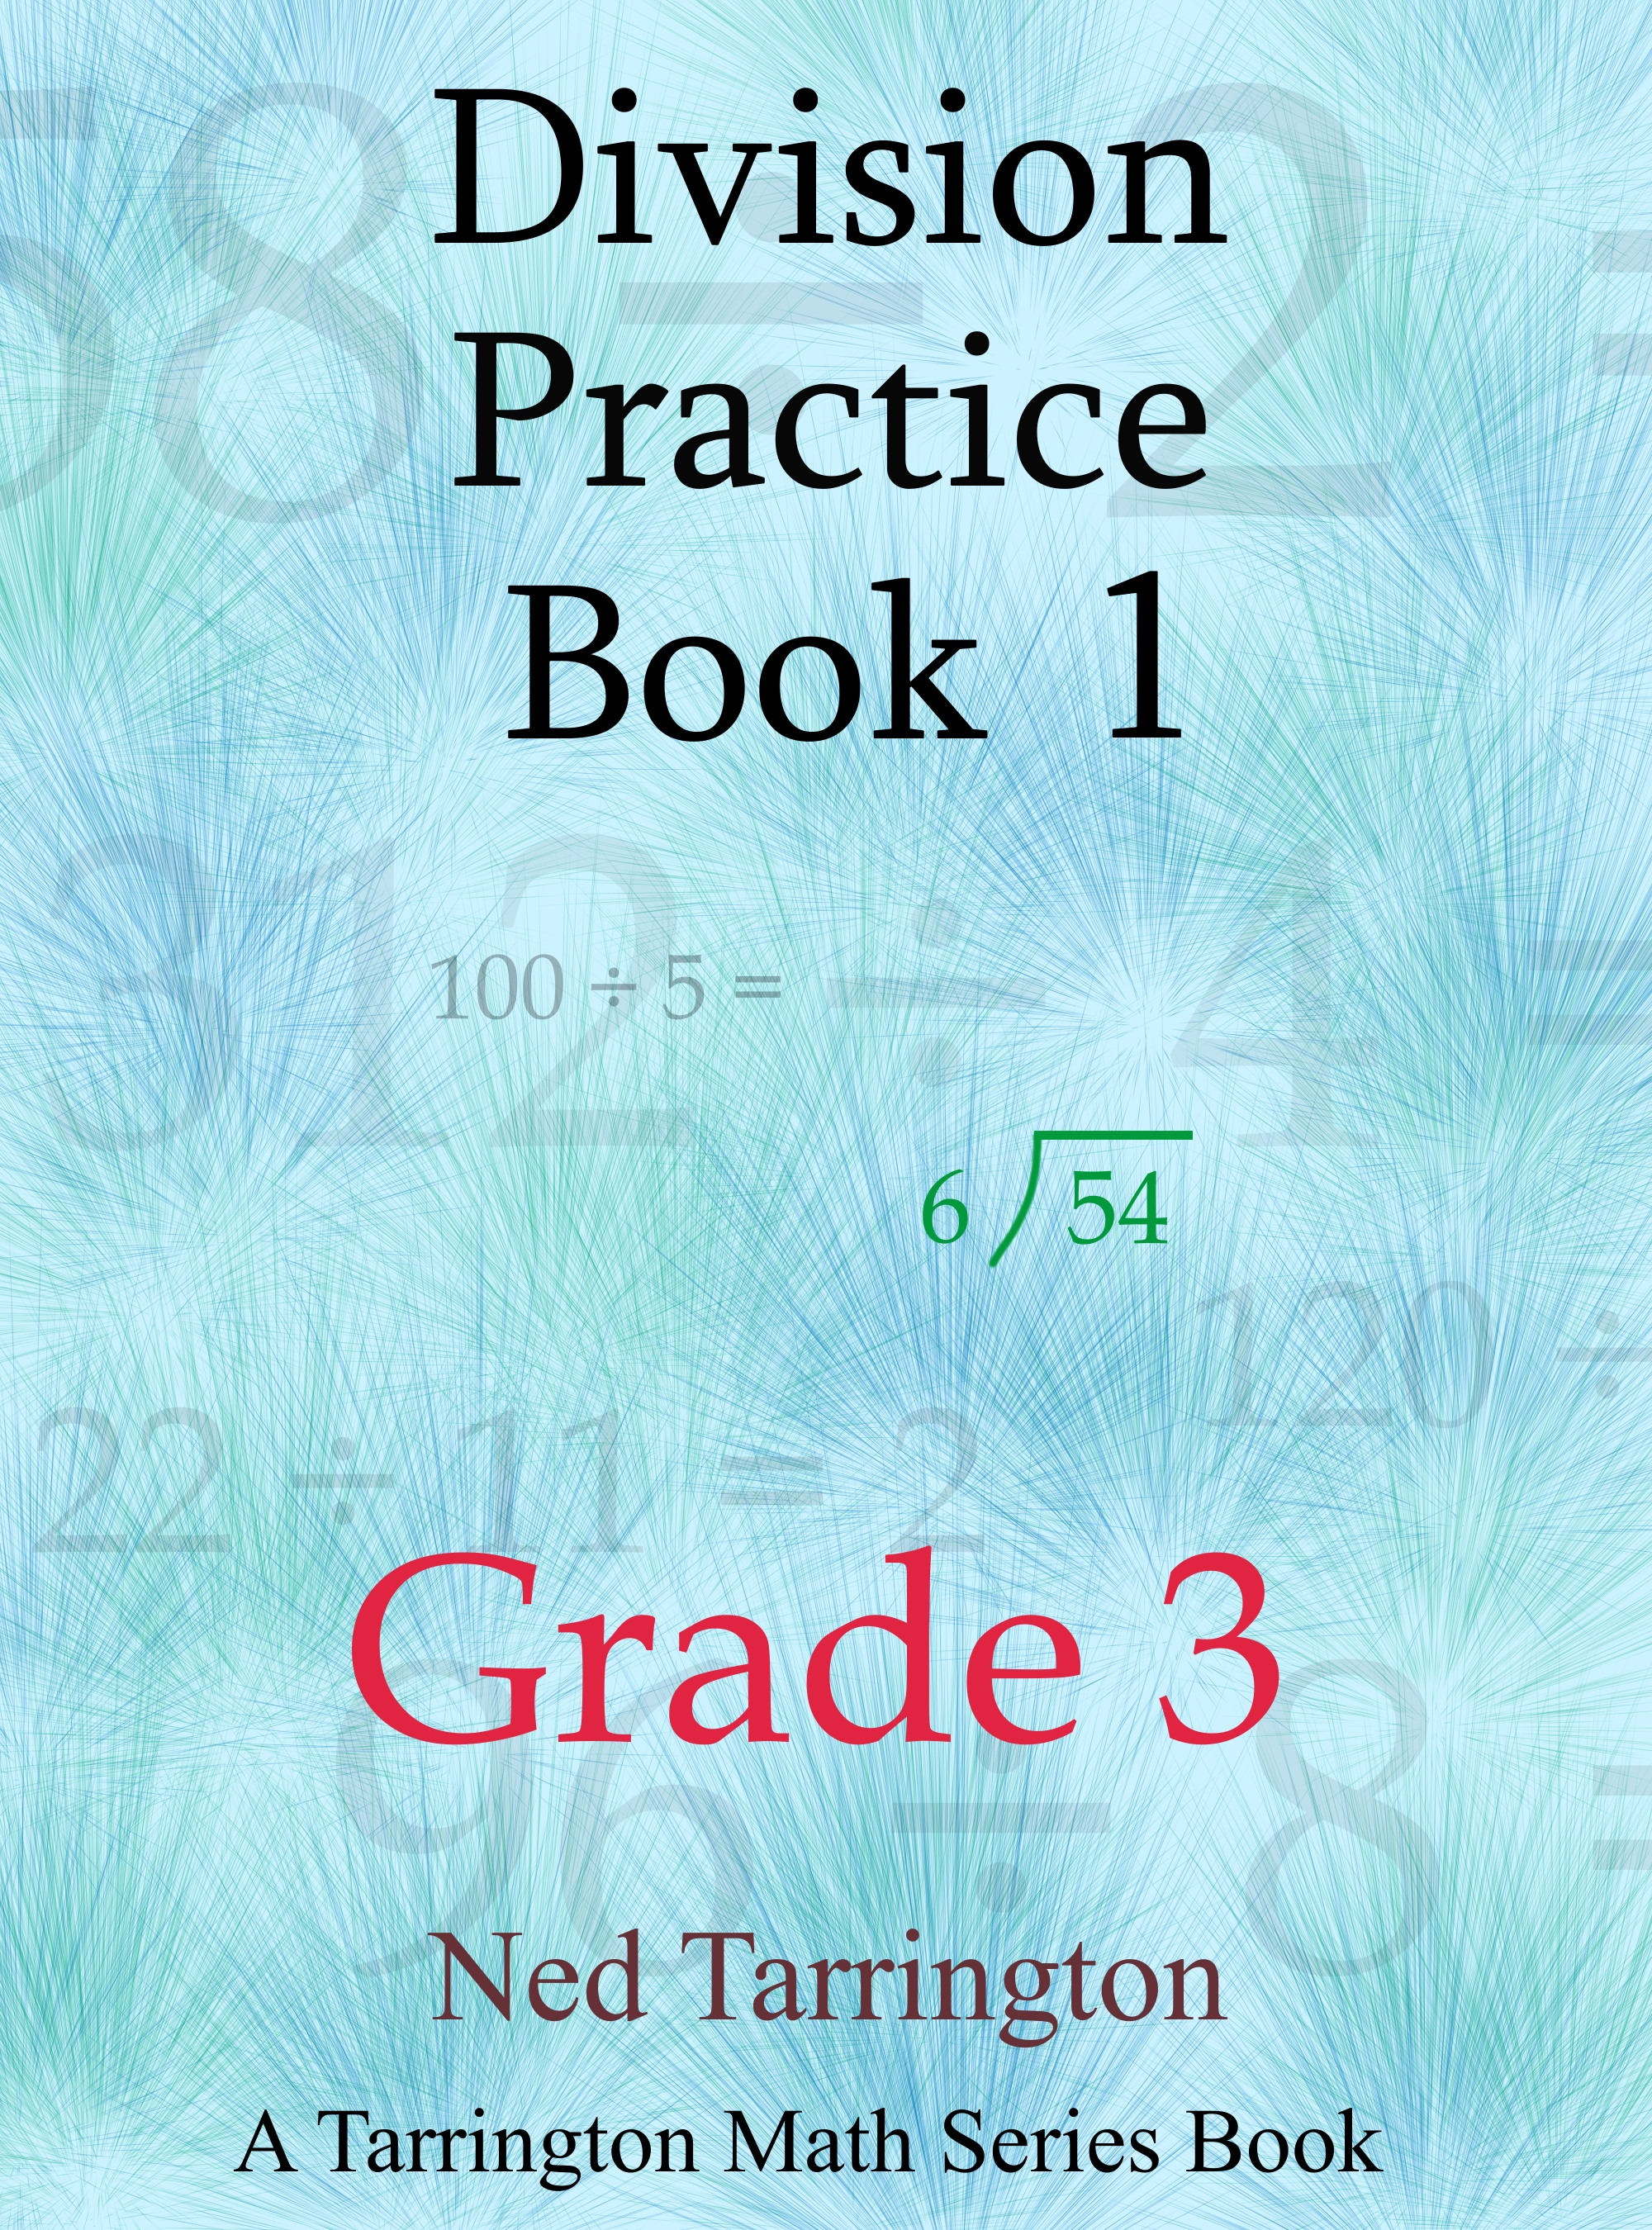 Division Practice Book 1, Grade 3, an Ebook by Ned Tarrington